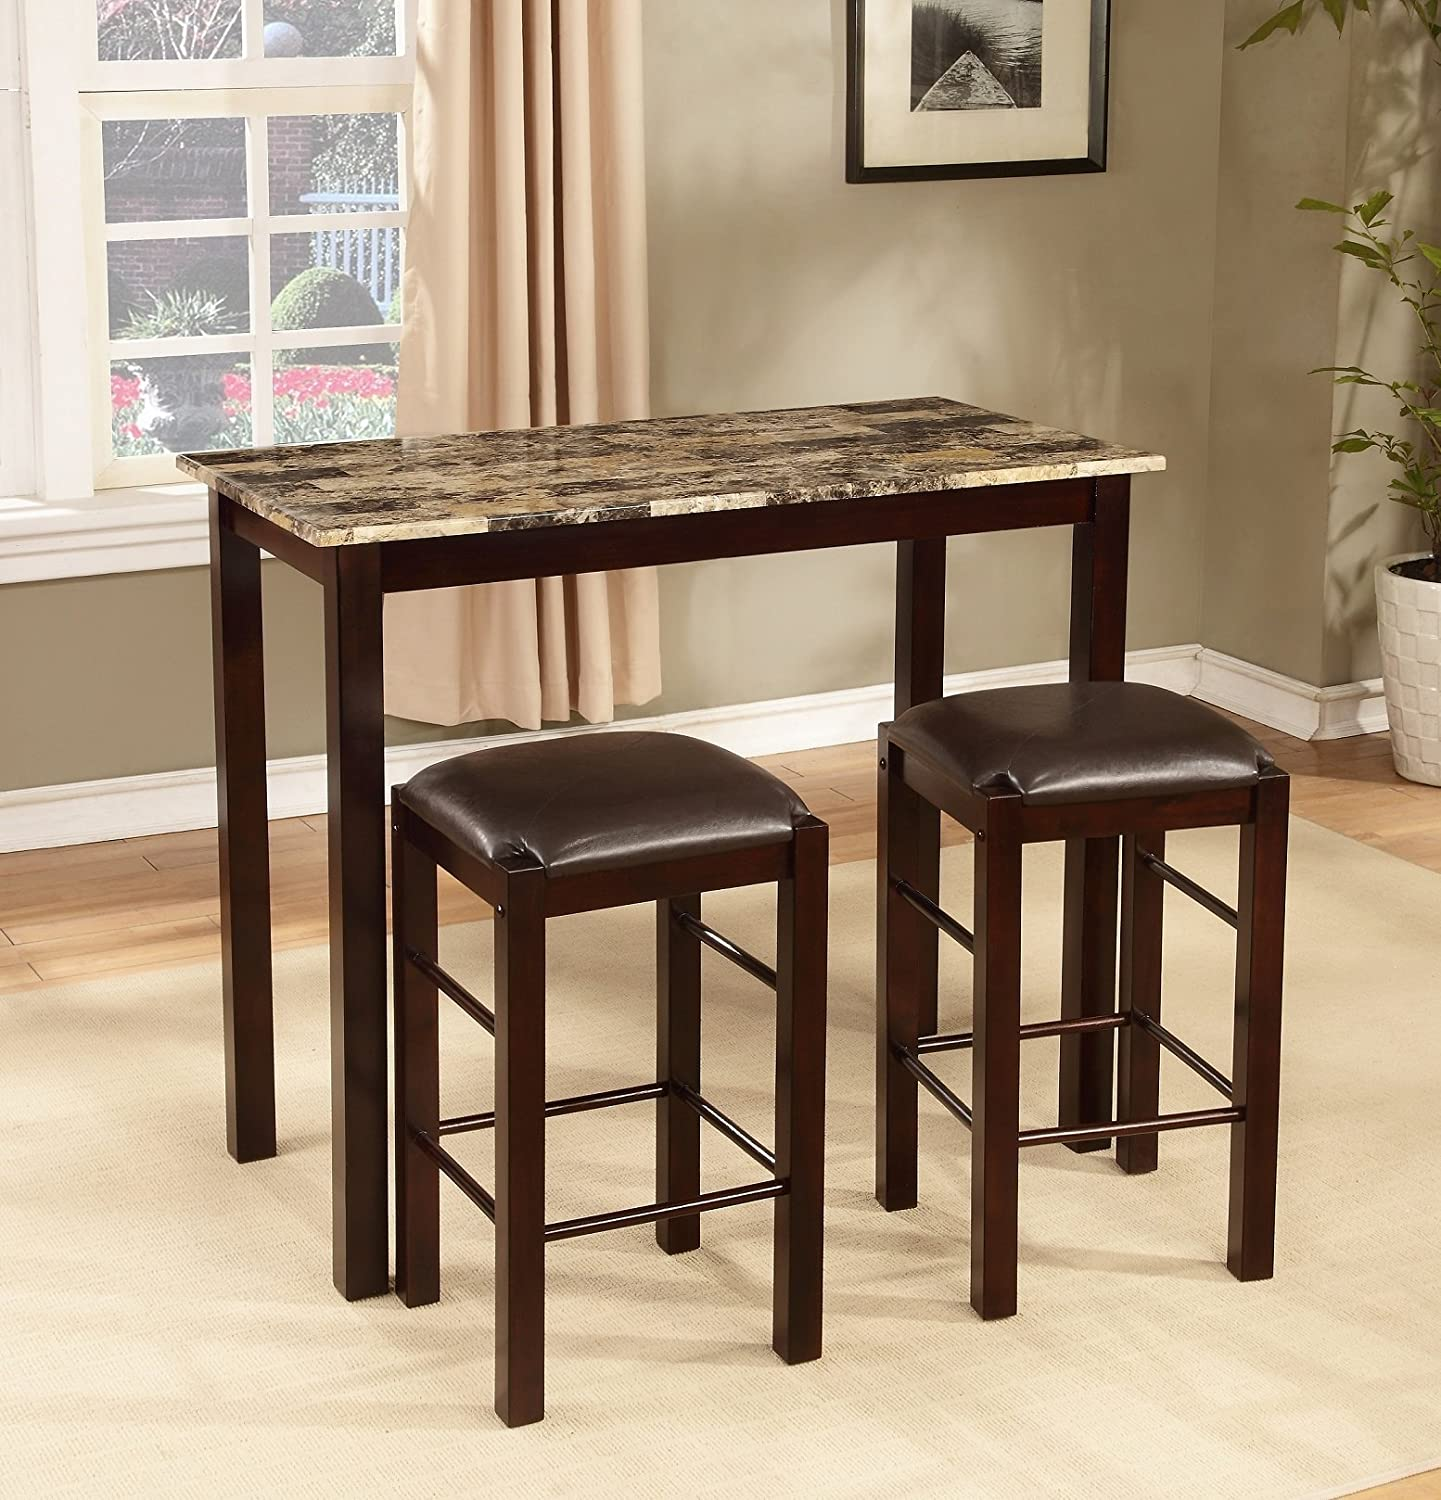 amazoncom roundhill furniture brando 3 piece counter height breakfast set espresso finish table chair sets - Breakfast Table With Chairs